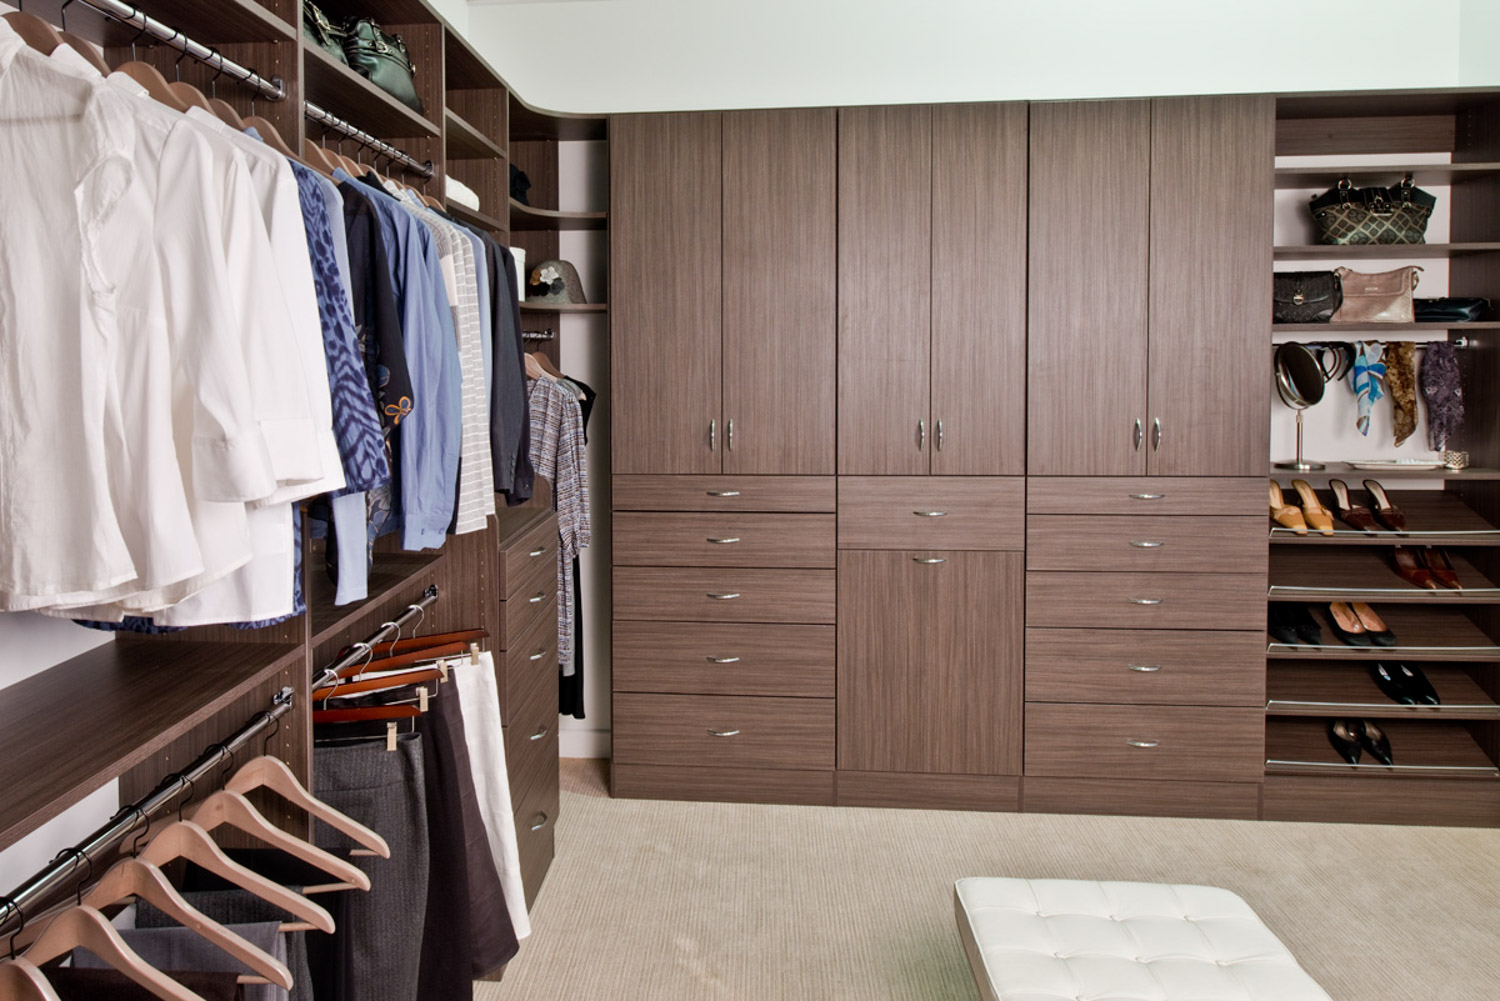 I Need A Rod To Hang Hangers Under By Laundry Cabinet Most Popular Home Design